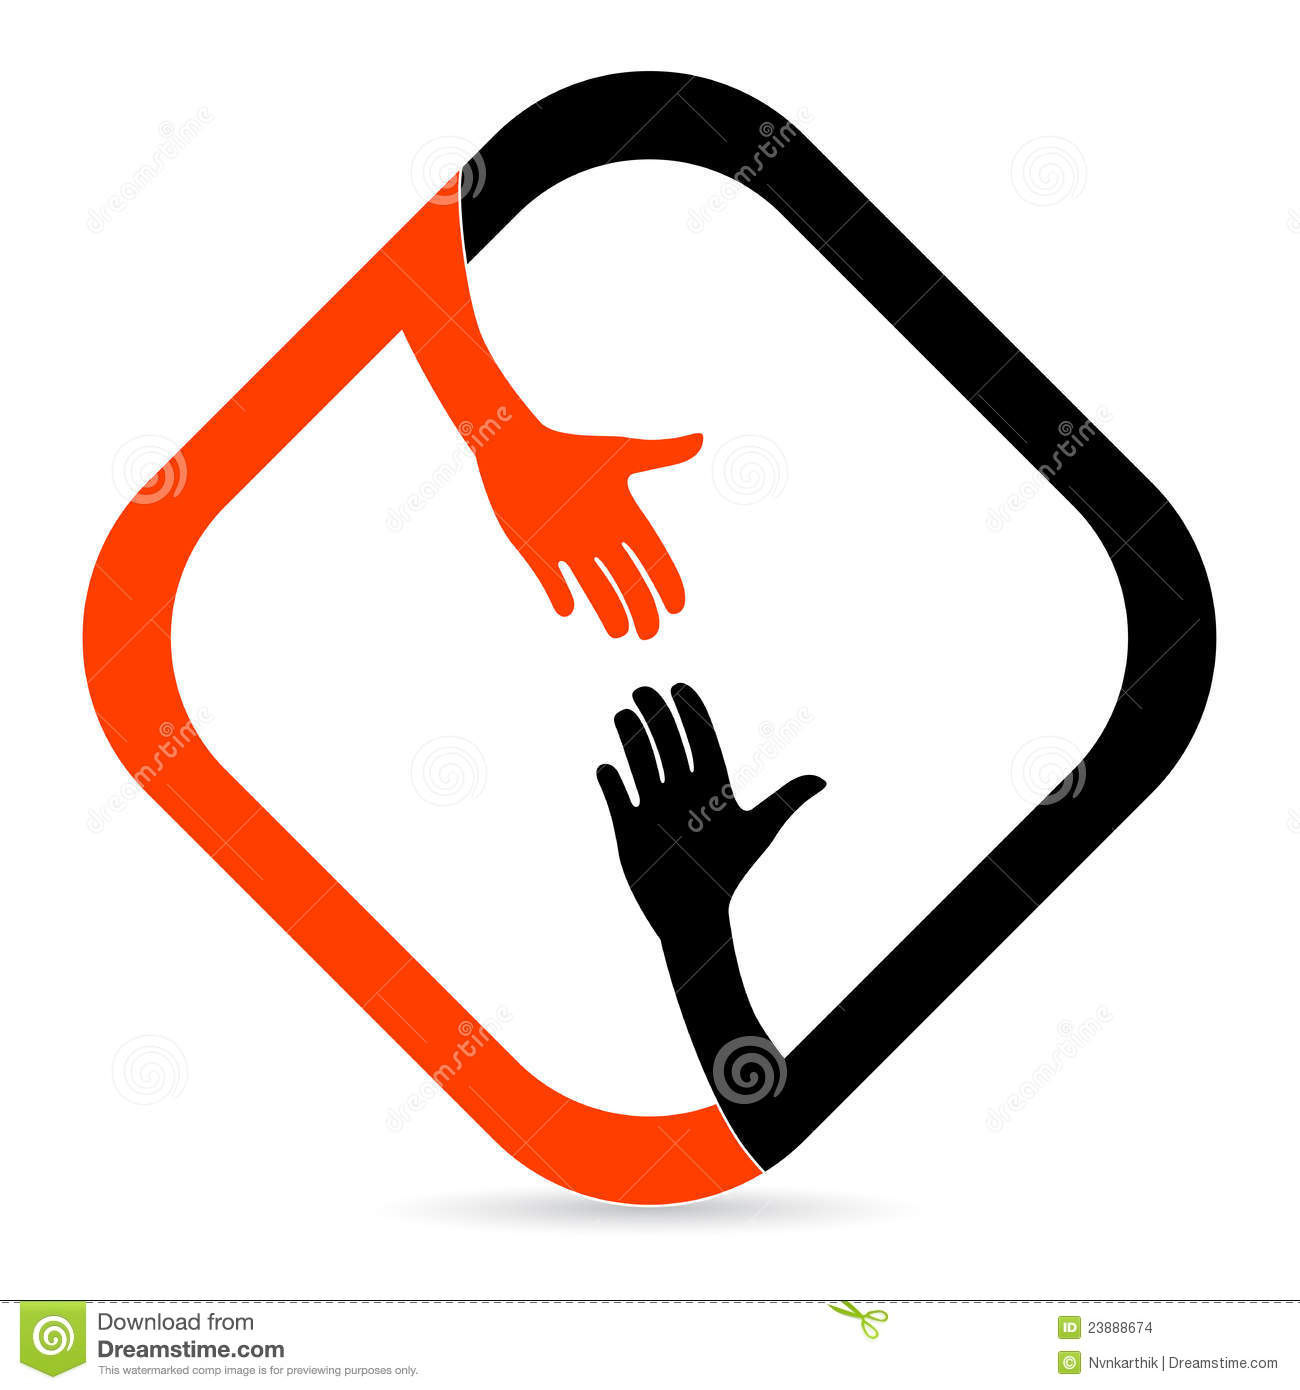 helping hand stock illustrations 5 156 helping hand stock rh dreamstime com helping hands clipart free helping hands vector clipart